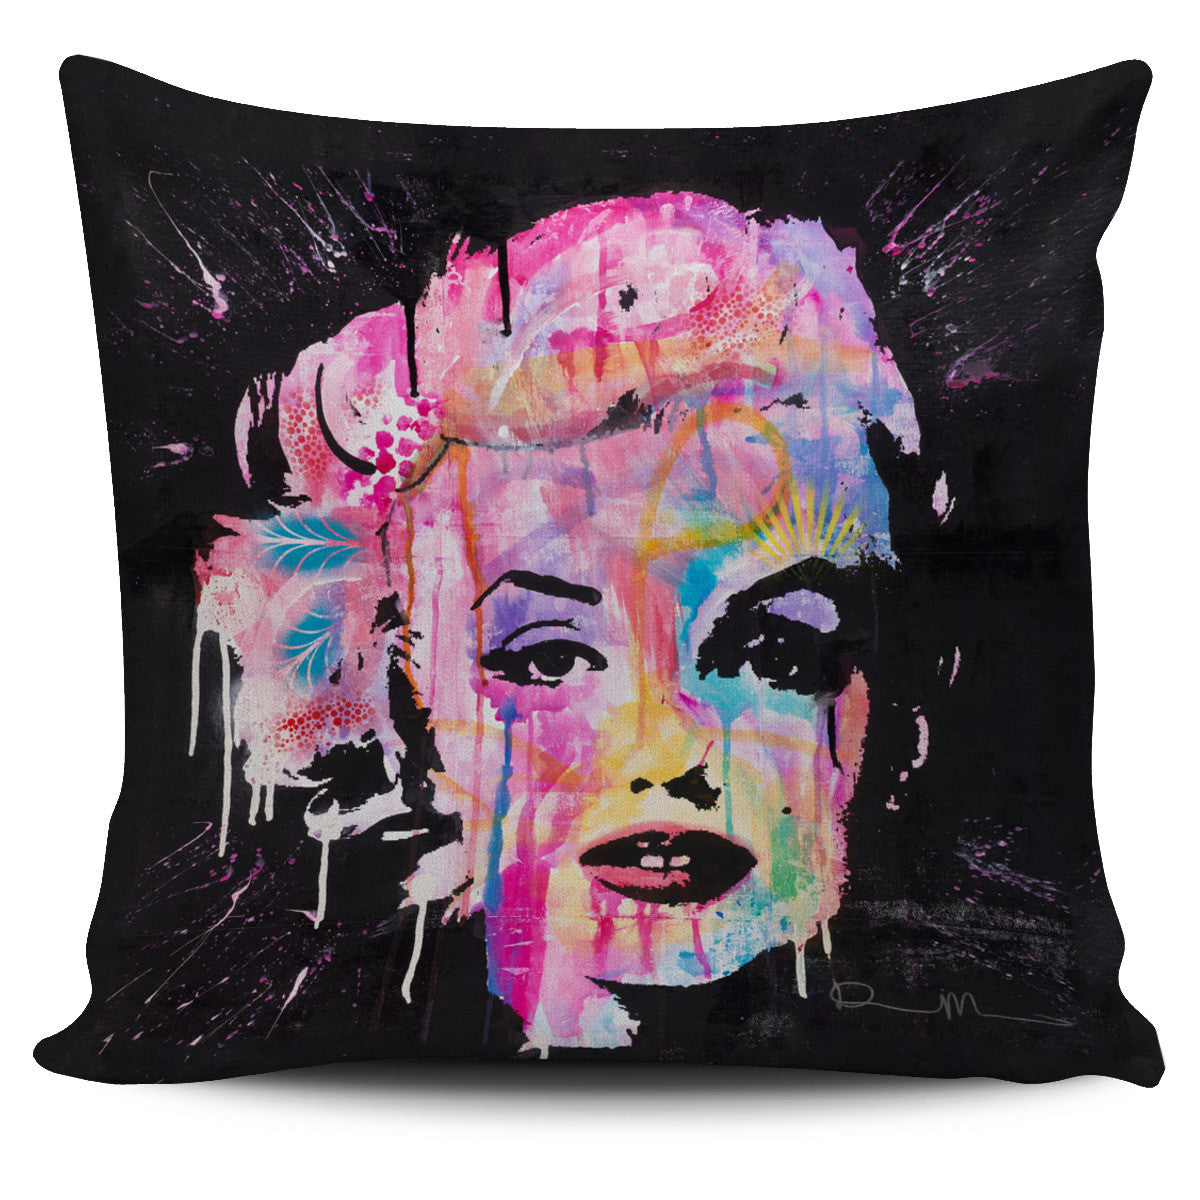 Marilyn Series Pillow Covers Offer